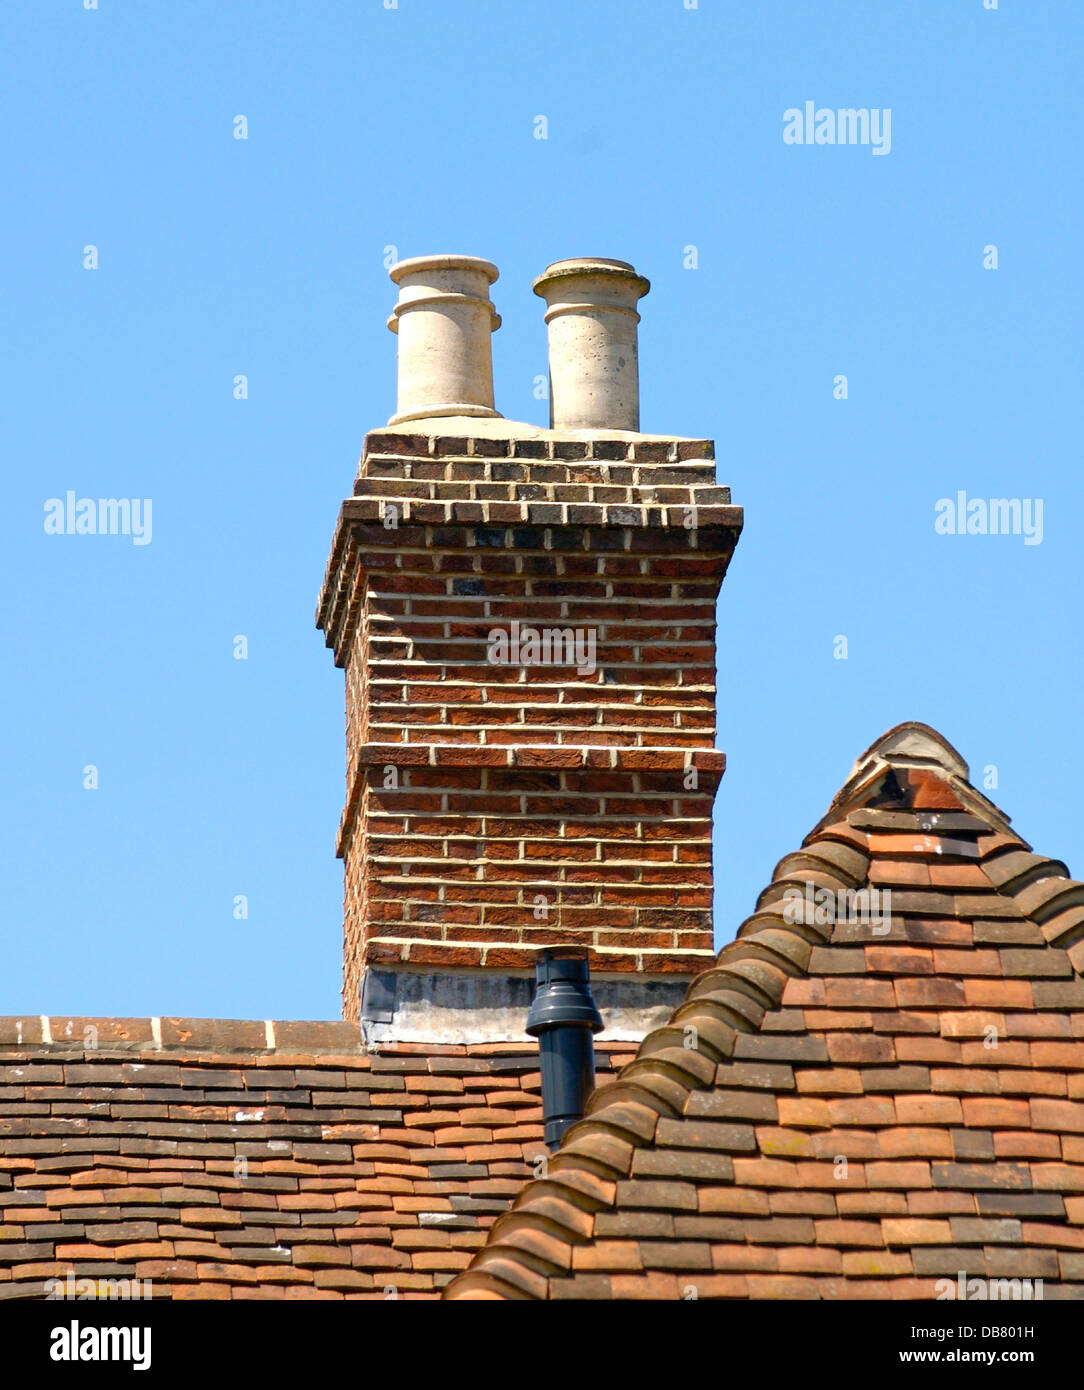 Old chimney pots on a roof in UK - Stock Image